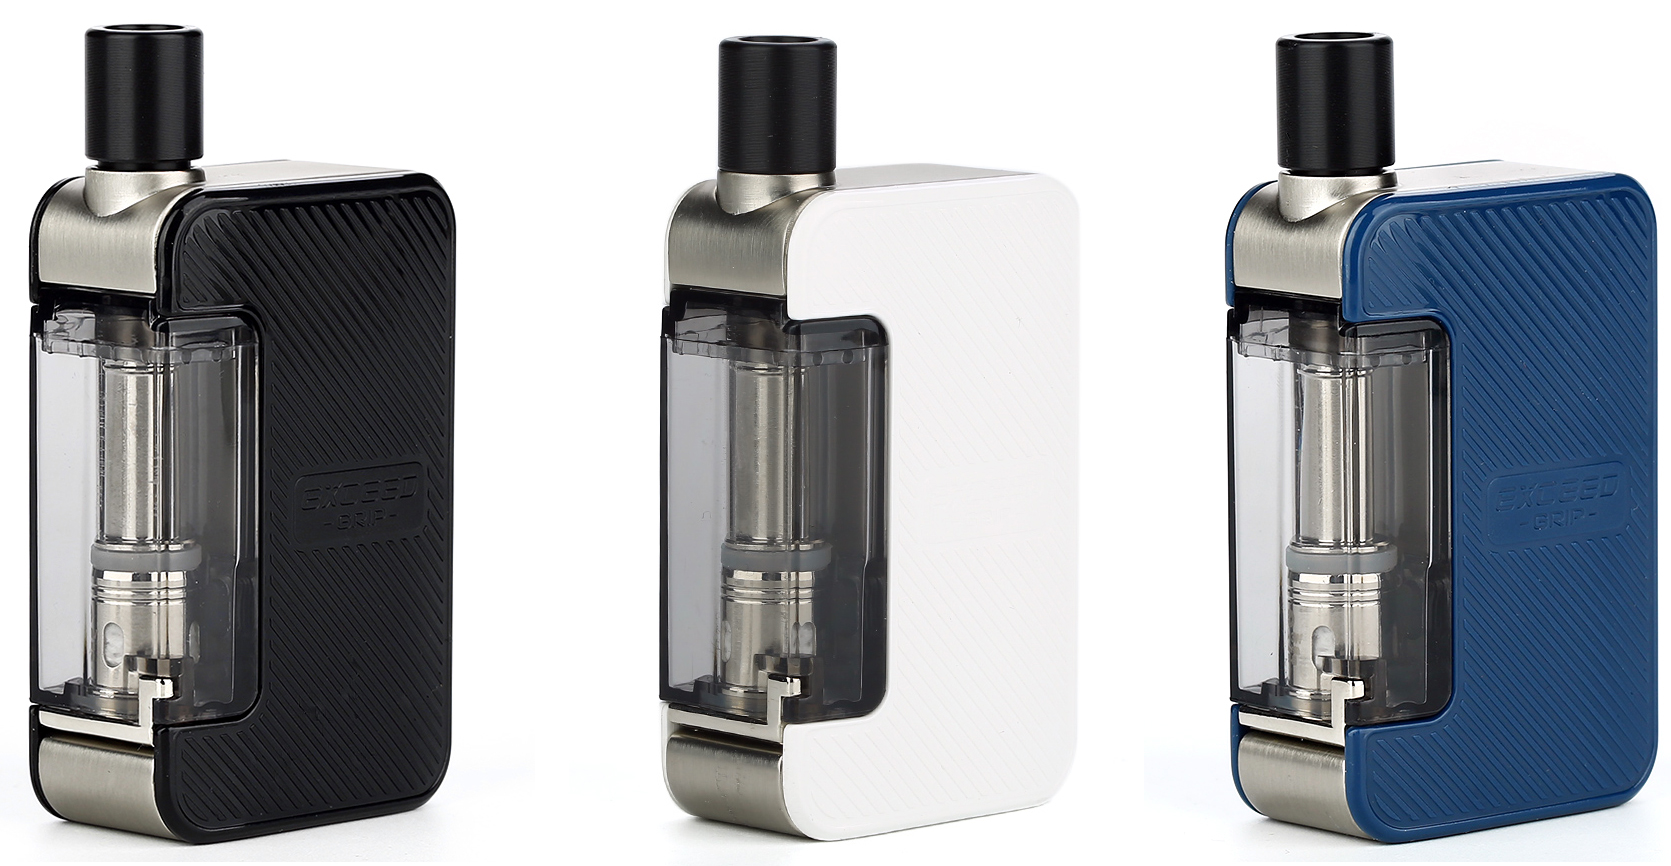 Joyetech Exceed Grip Kit - JOYETECH EXCEED GRIP KIT 1000mah 20W